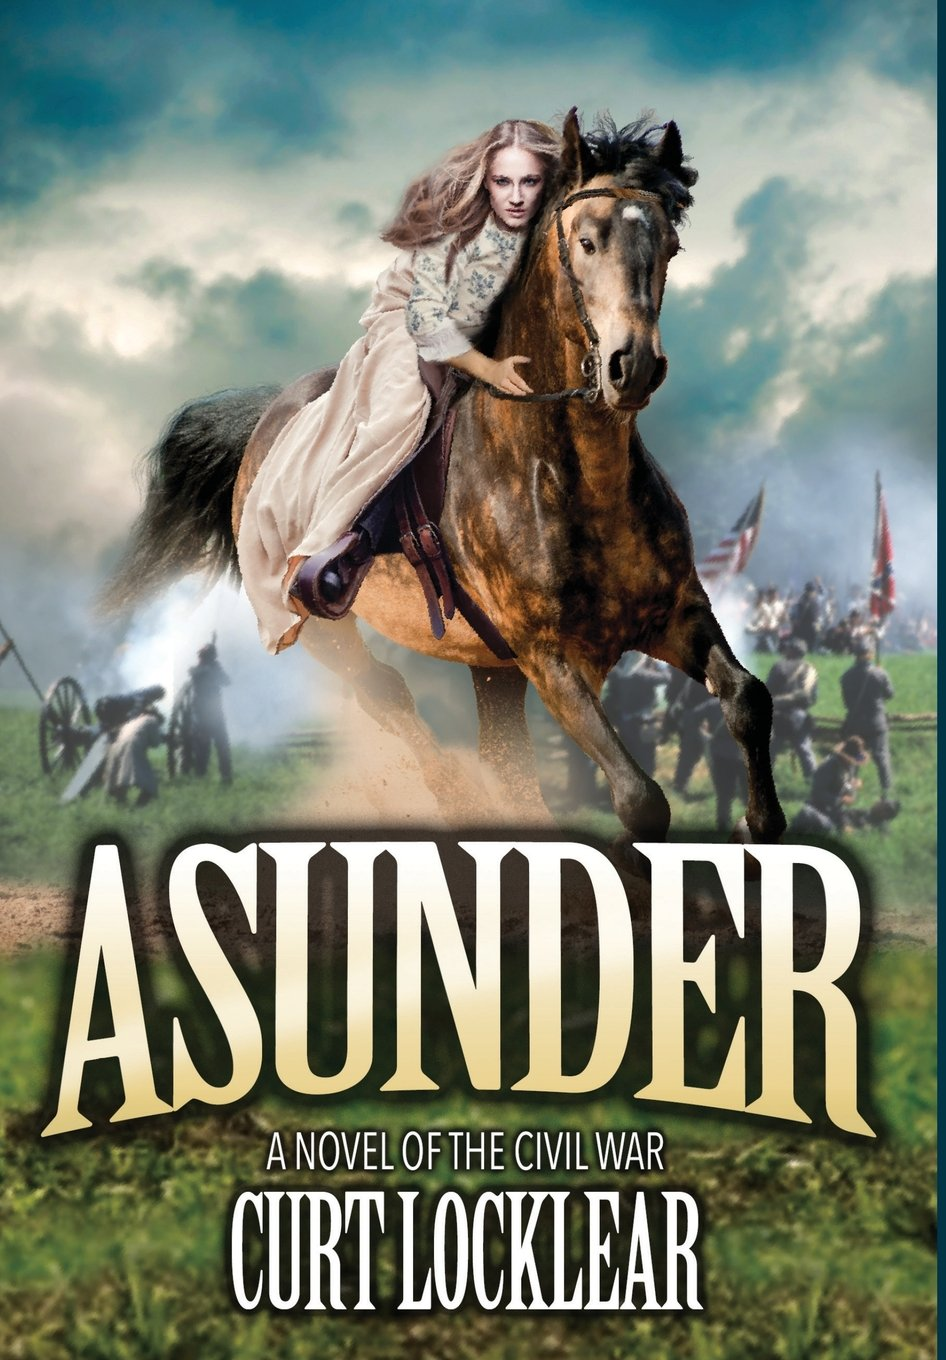 Asunder a novel of the civil war curt locklear 9781478770541 asunder a novel of the civil war curt locklear 9781478770541 amazon books fandeluxe Gallery